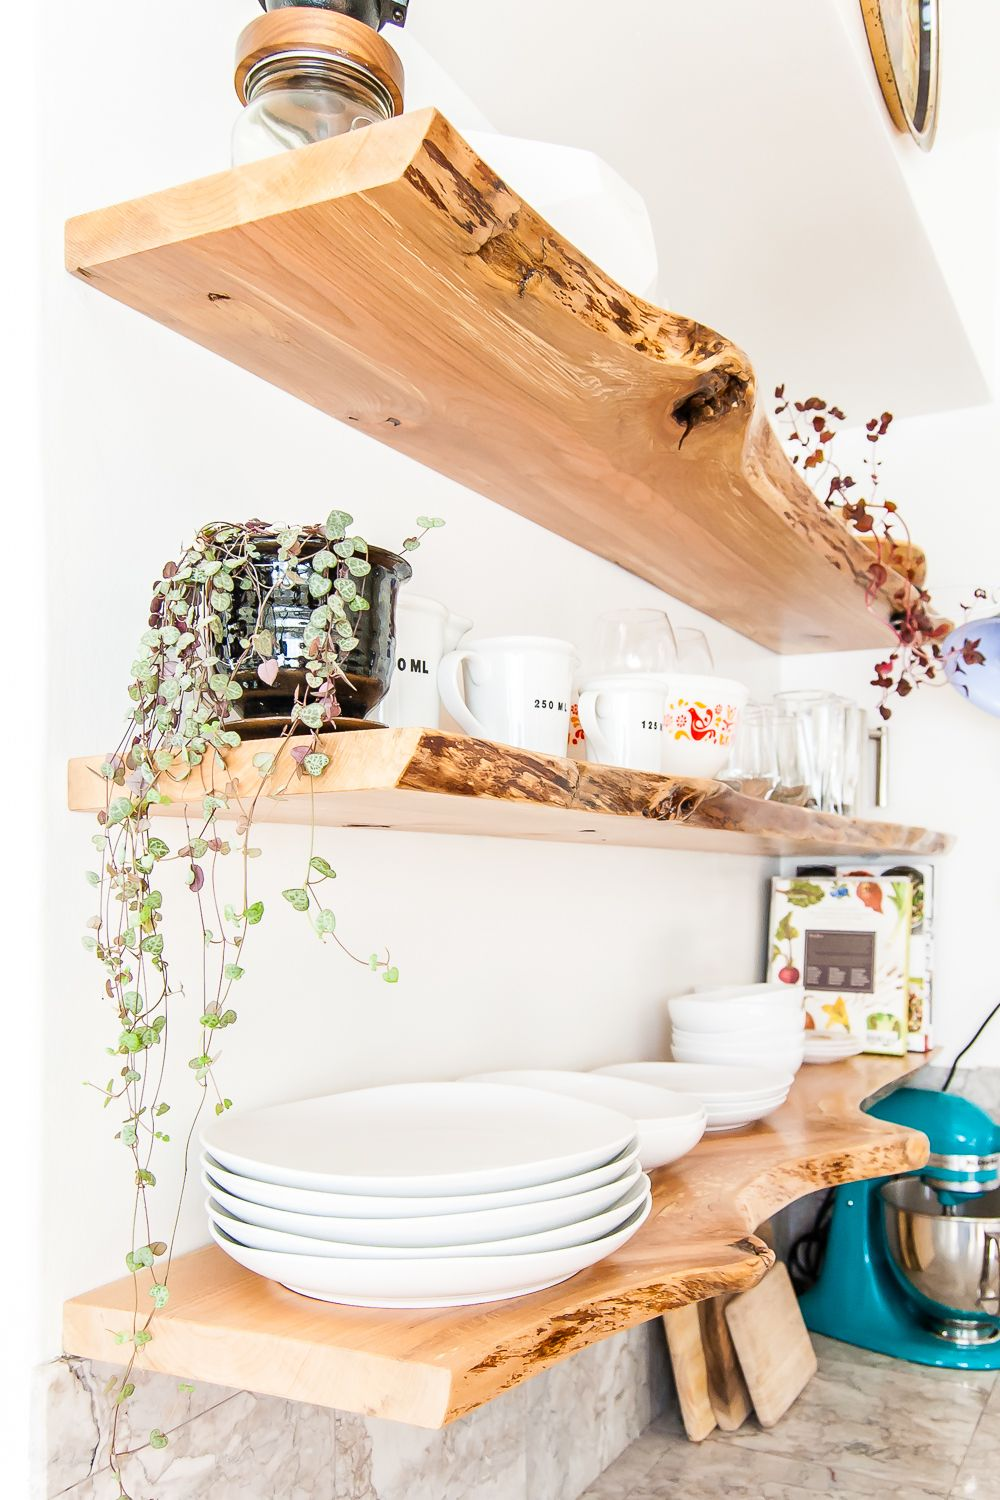 How to Build DIY Floating Shelves 7 Different Ways